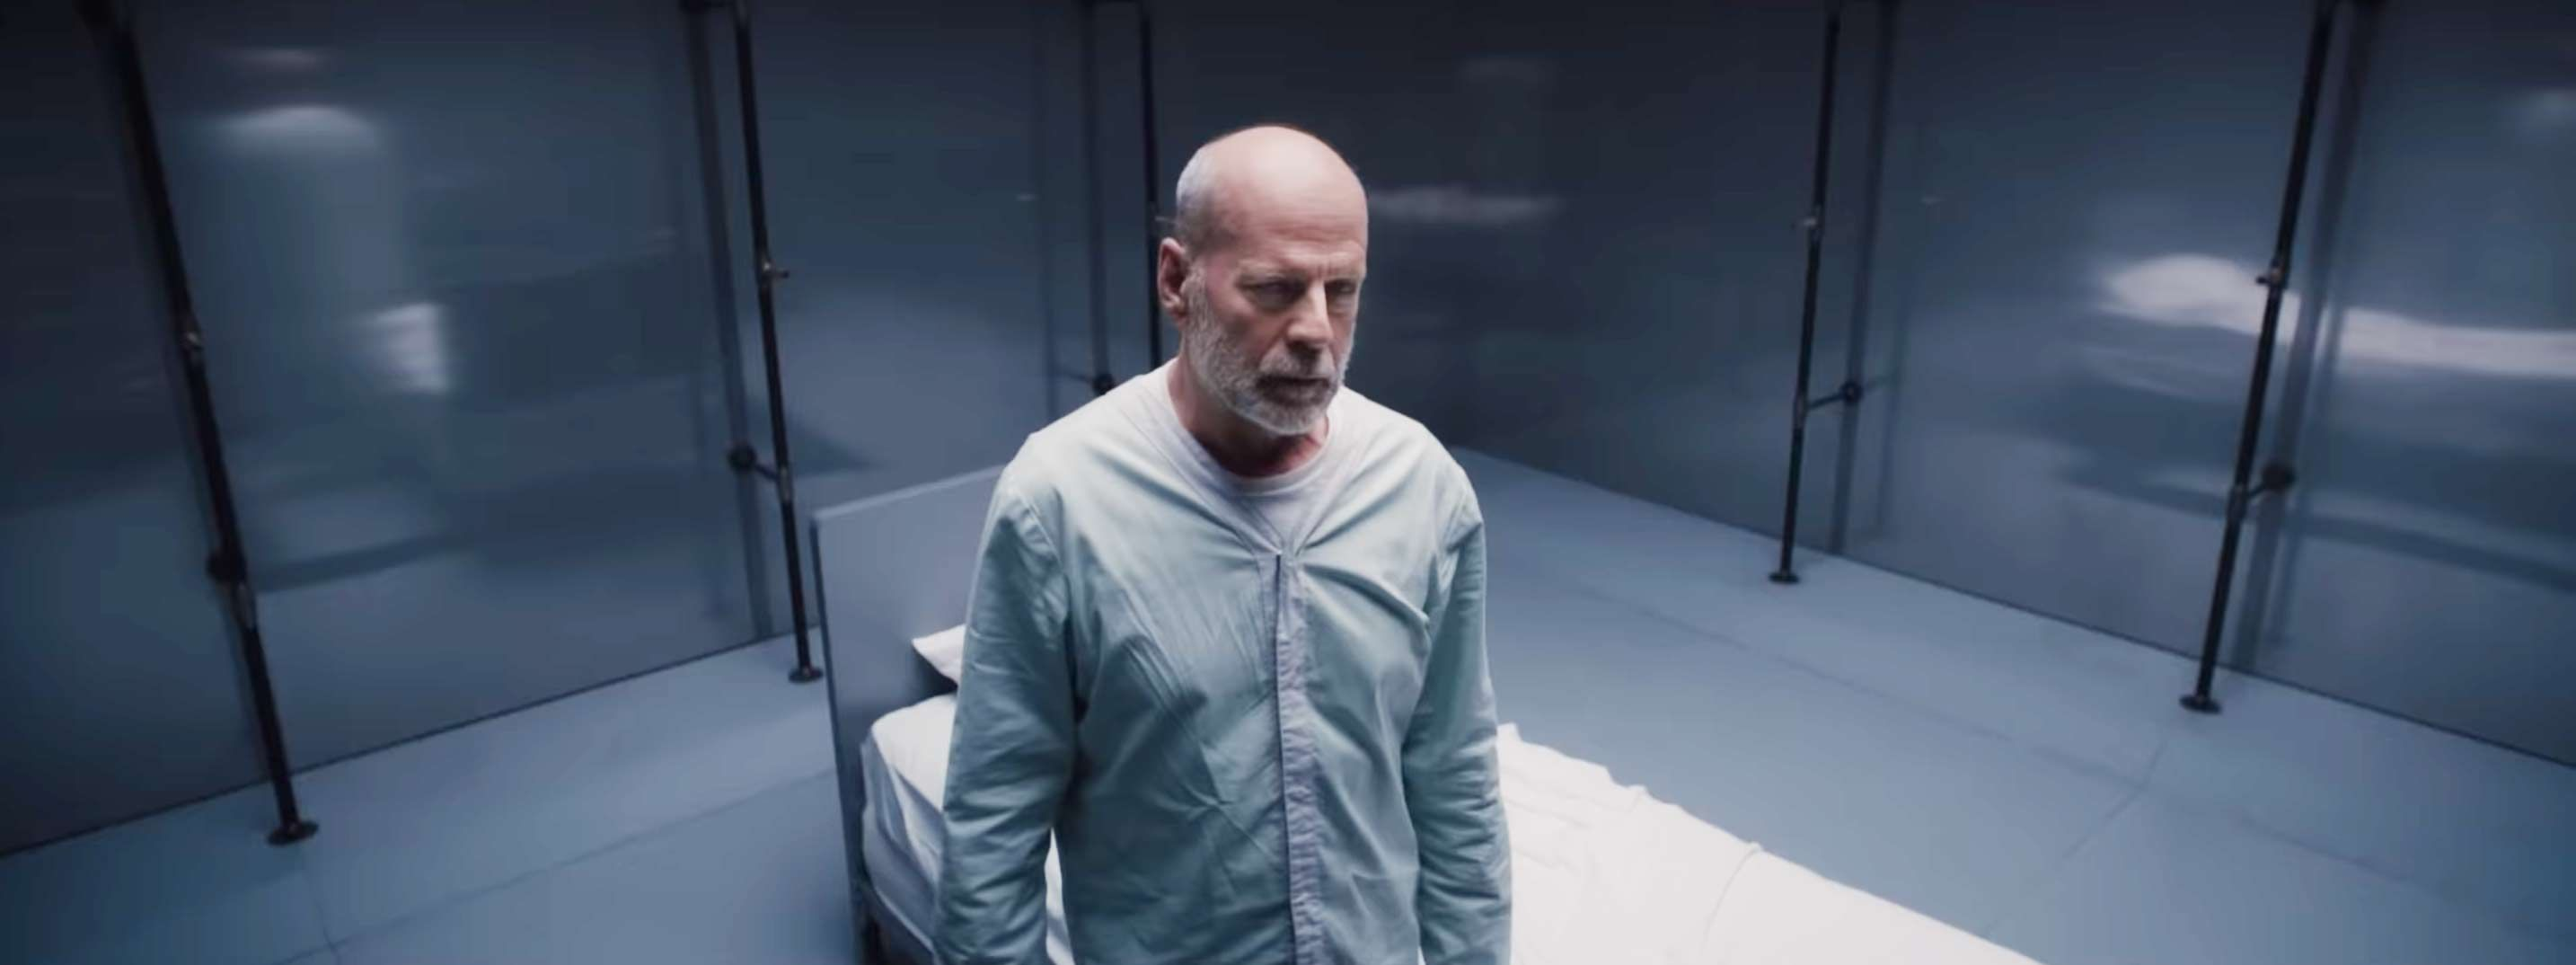 Unbreakable sequel Glass sees the bad guys teaming up in new trailer and reveals Bruce Willis's superhero name